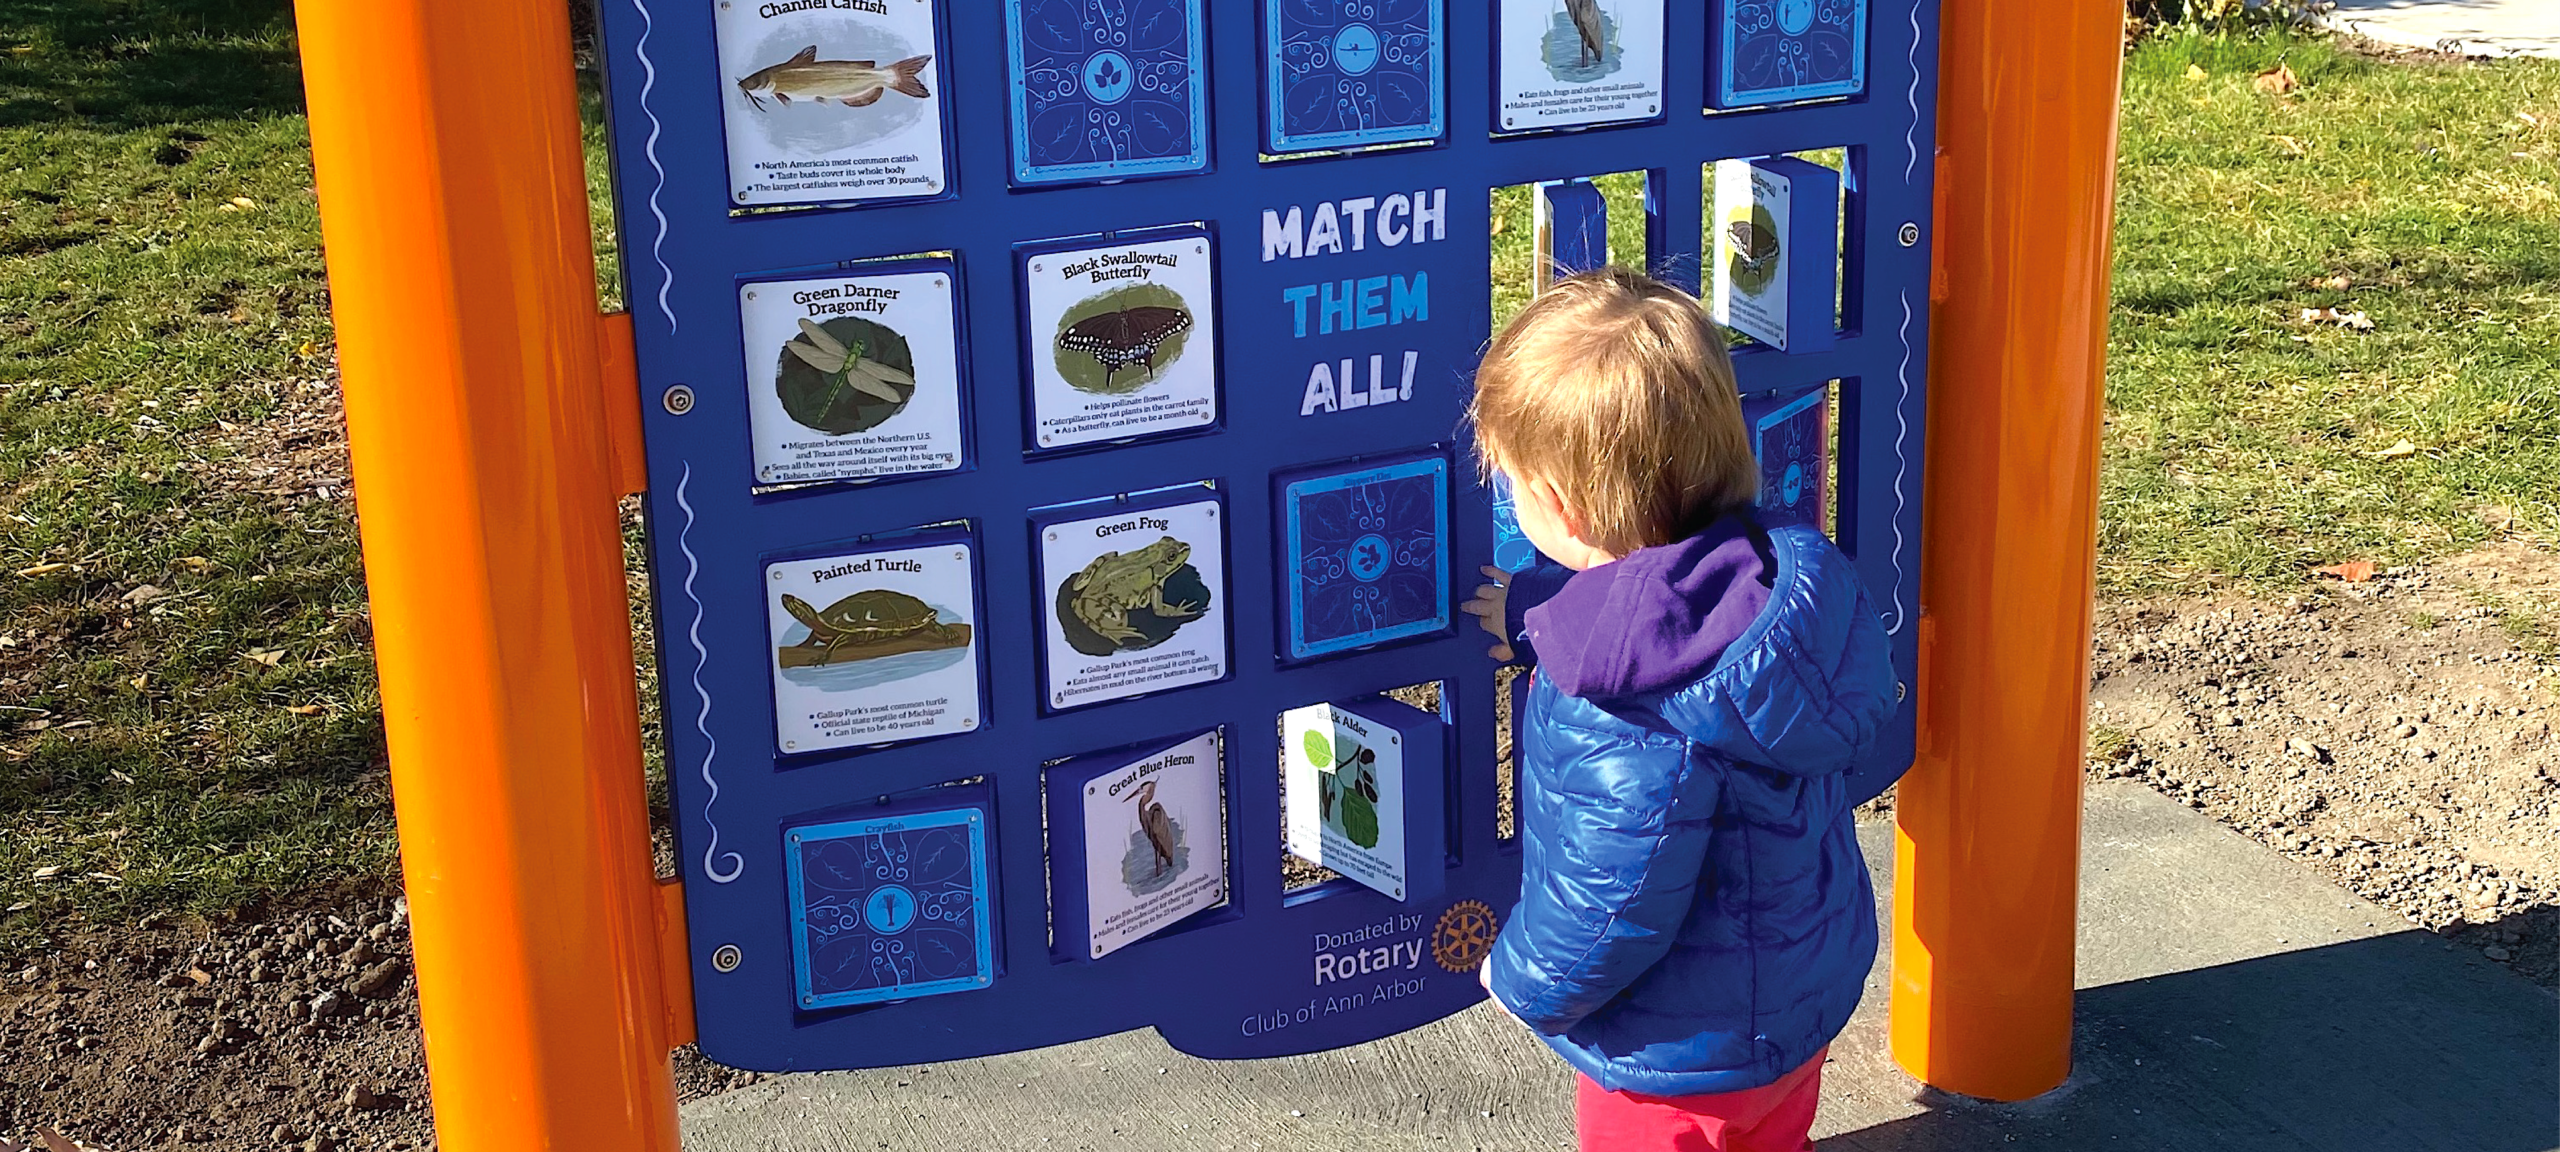 This concentration-style game encourages nature exploration through the use of local flora and fauna.